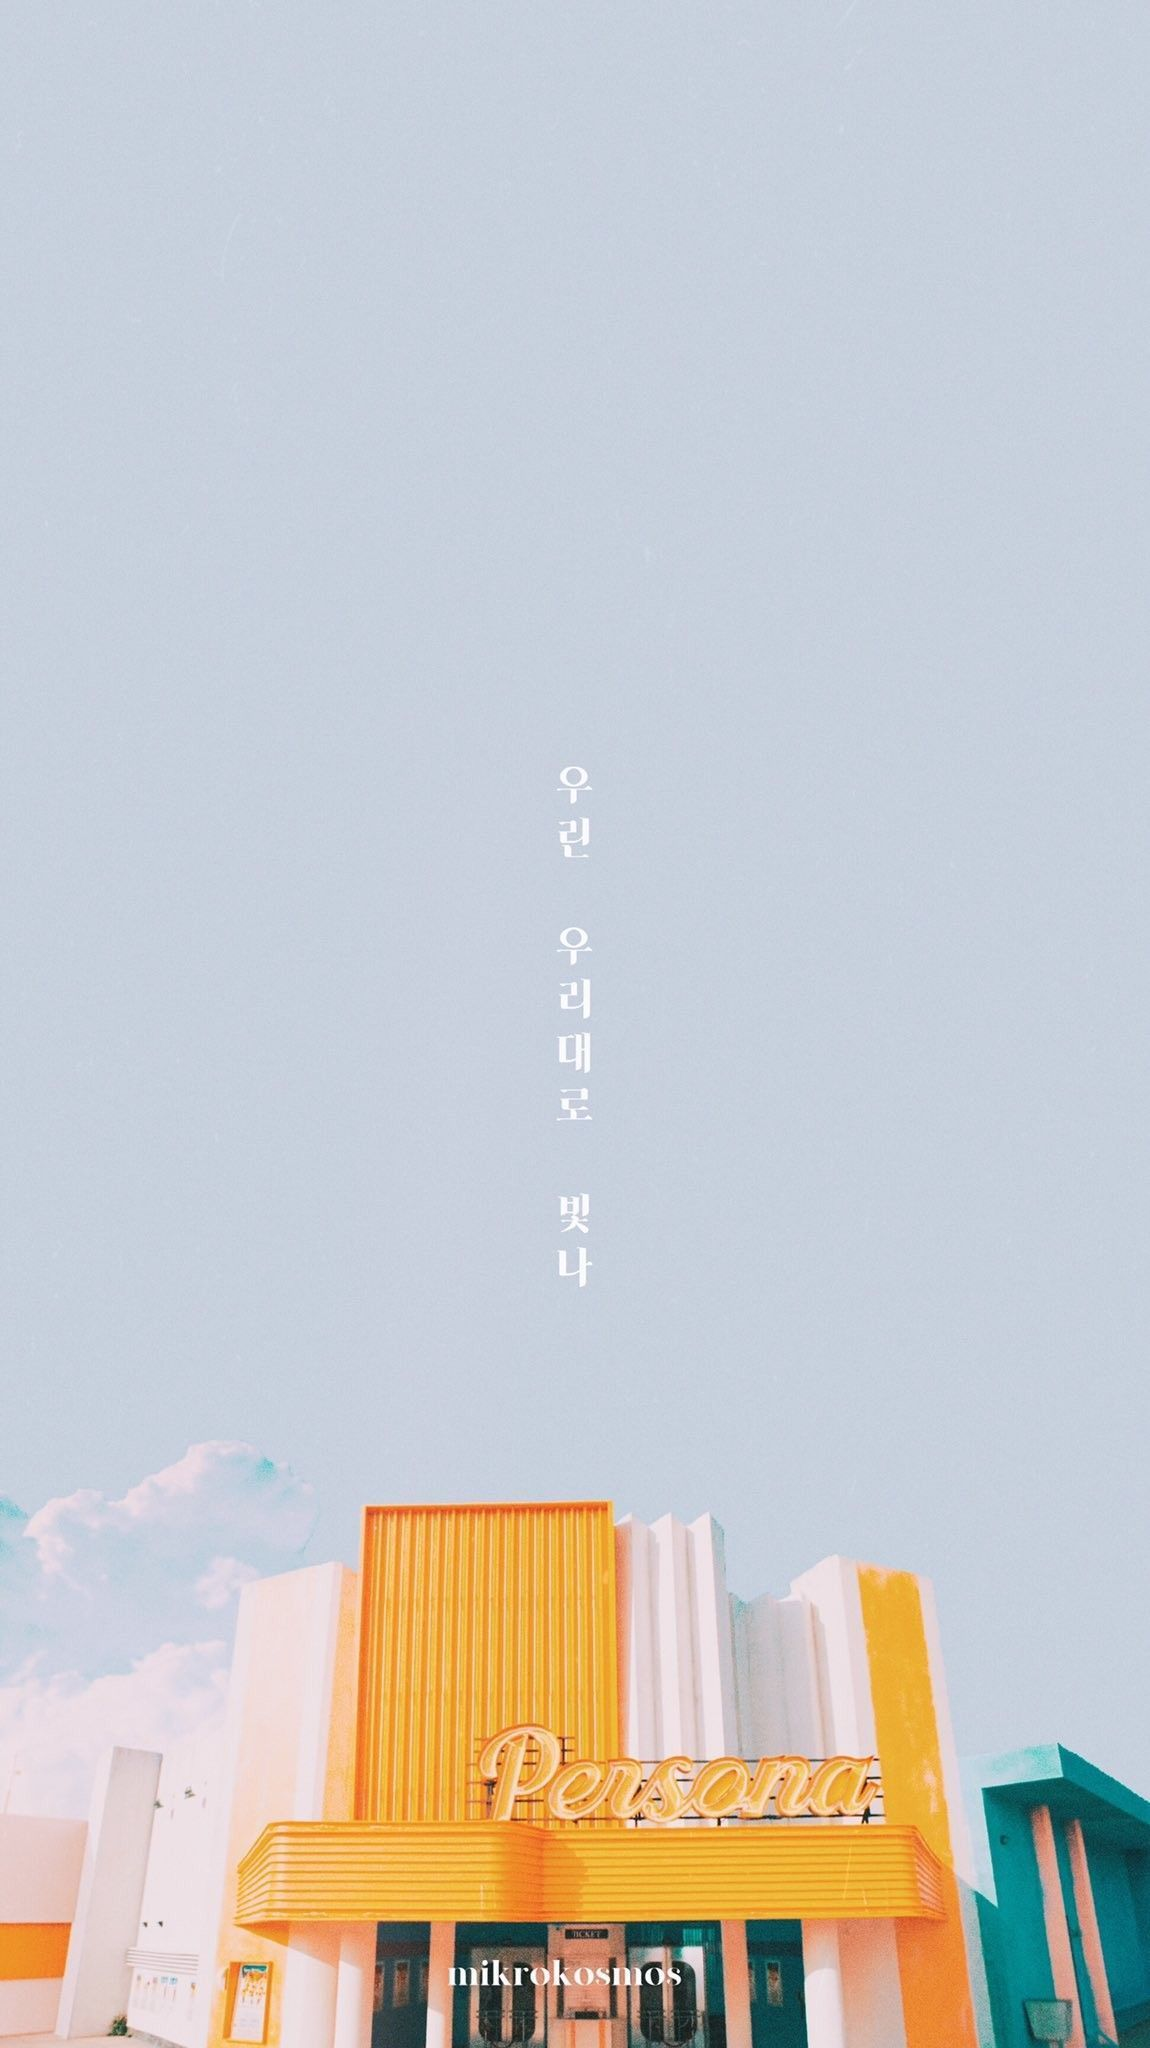 Laseskjermen Koreansk Bakgrunn Iphone In 2020 Bts Wallpaper Bts Wallpaper Lyrics Korea Wallpaper